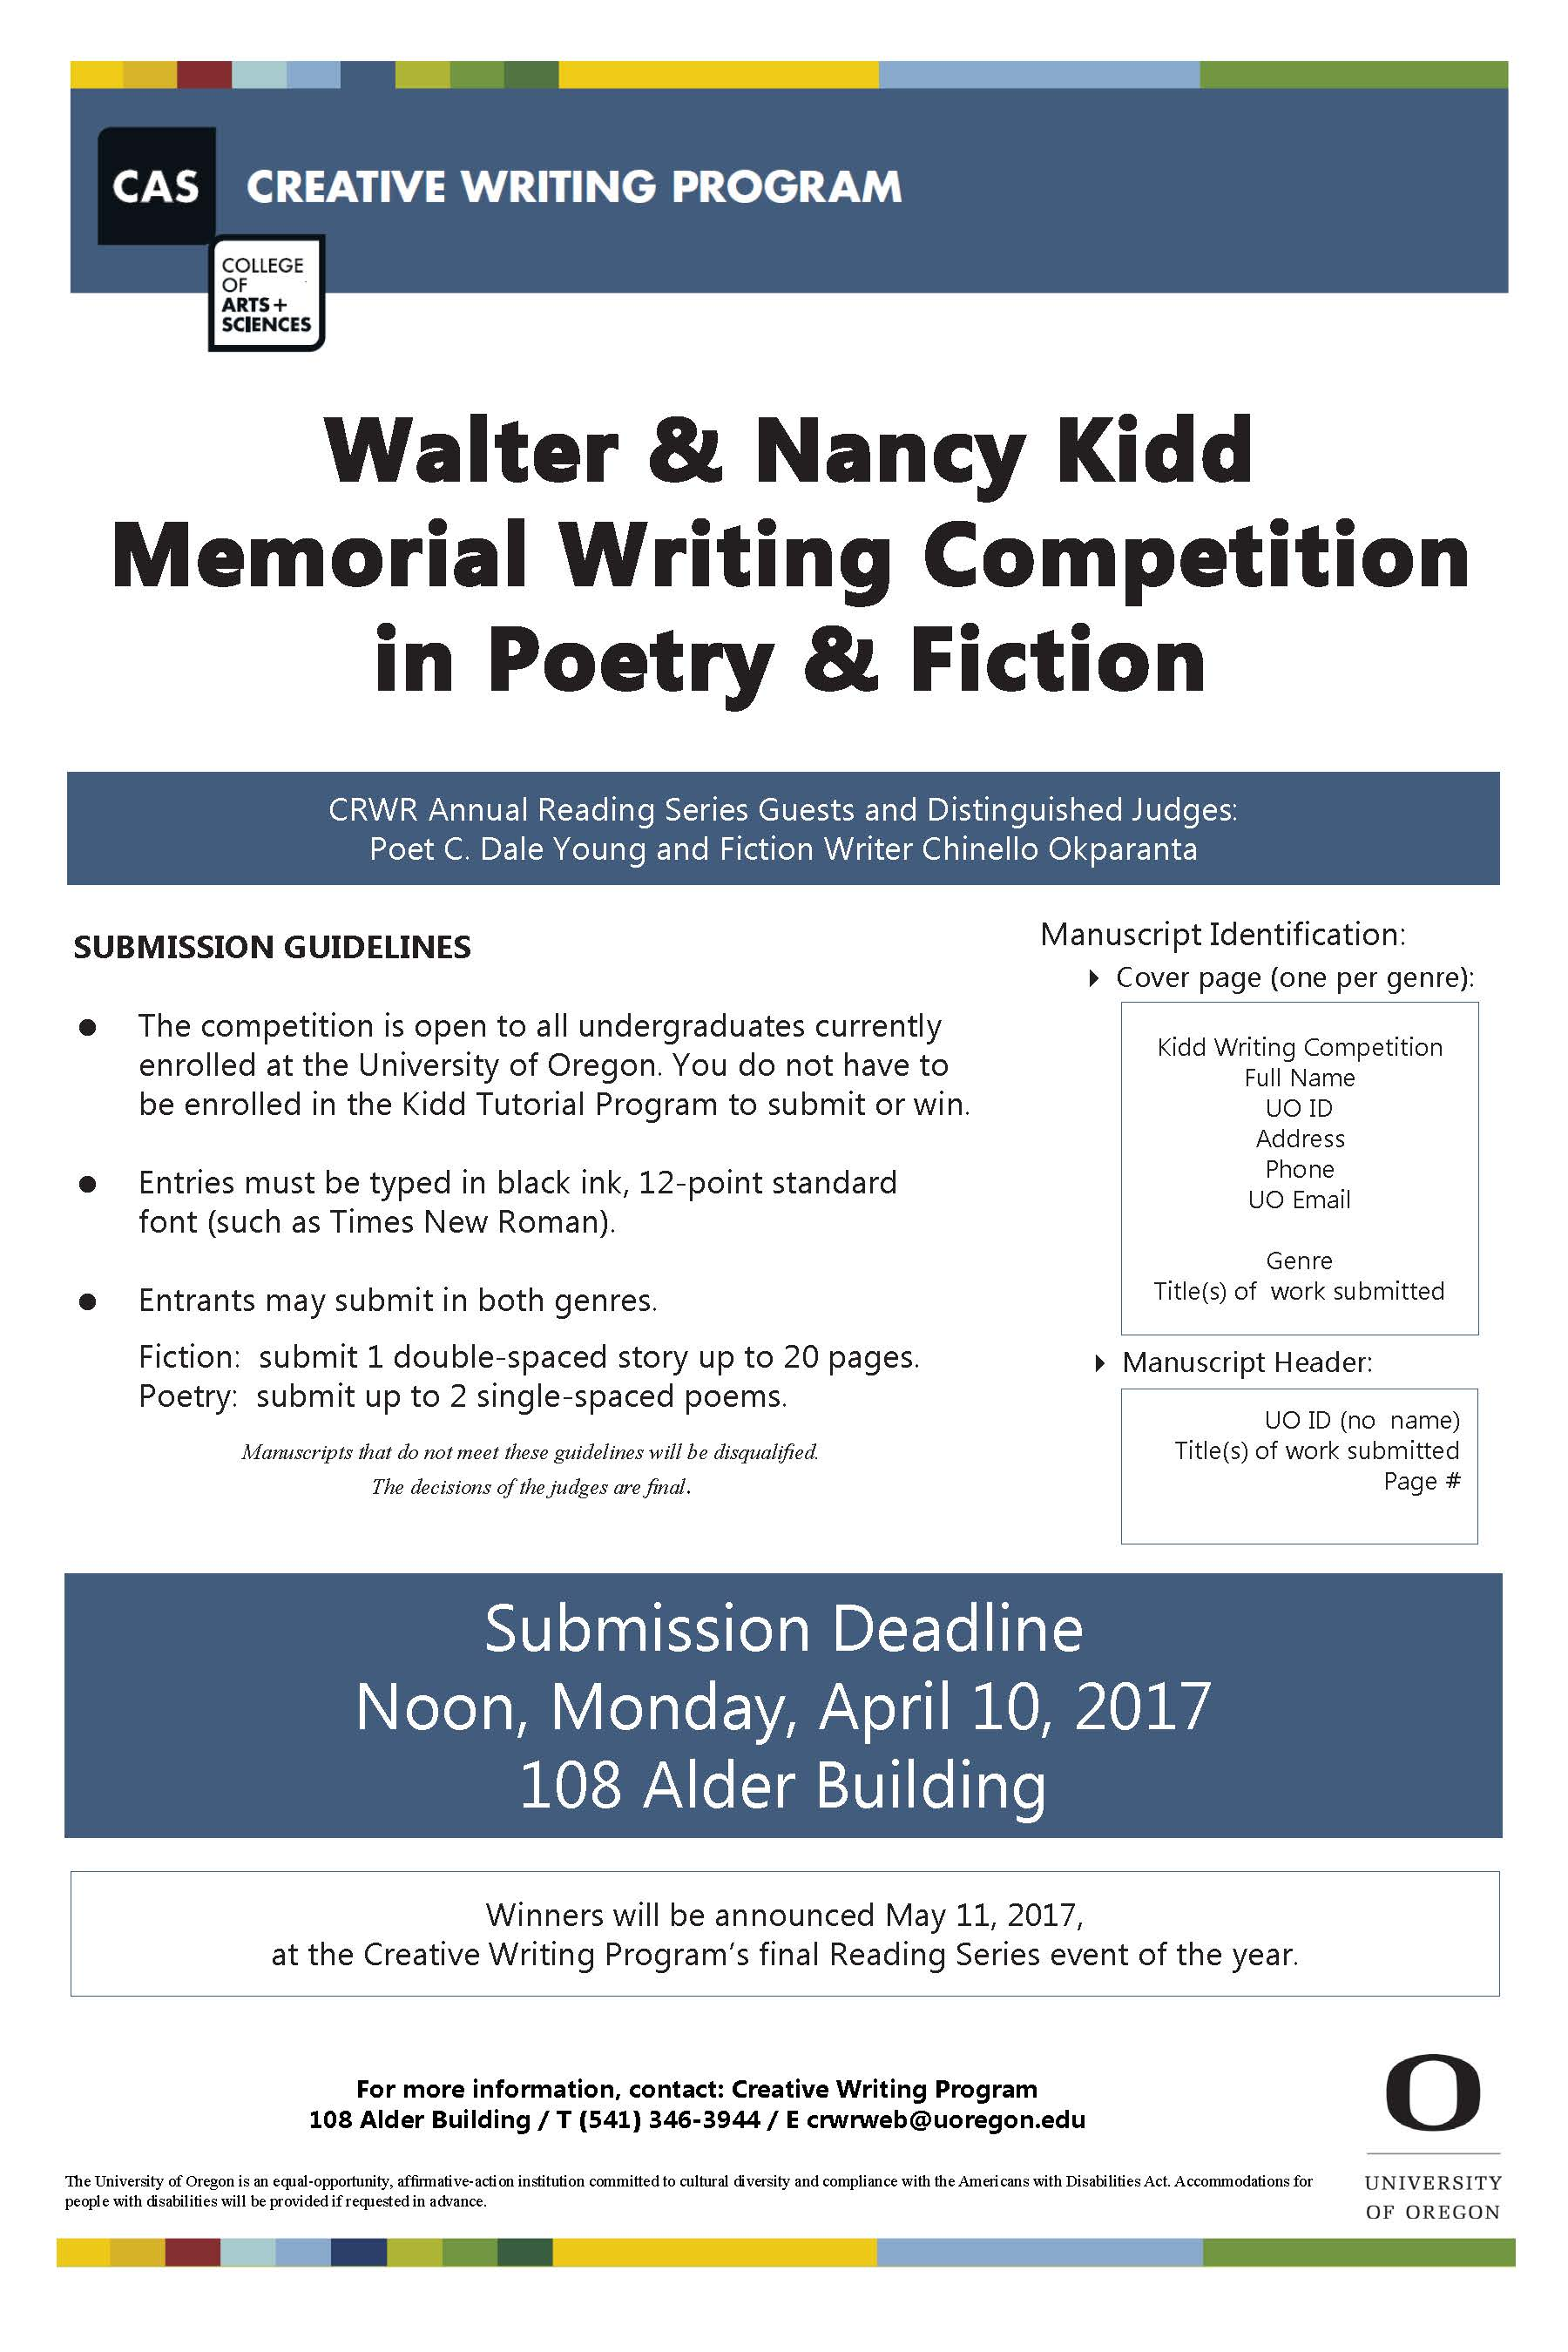 kidd writing competition creative writing program this contest is judged by guest authors participating in the creative writing program s annual reading series spring term winners are announced during